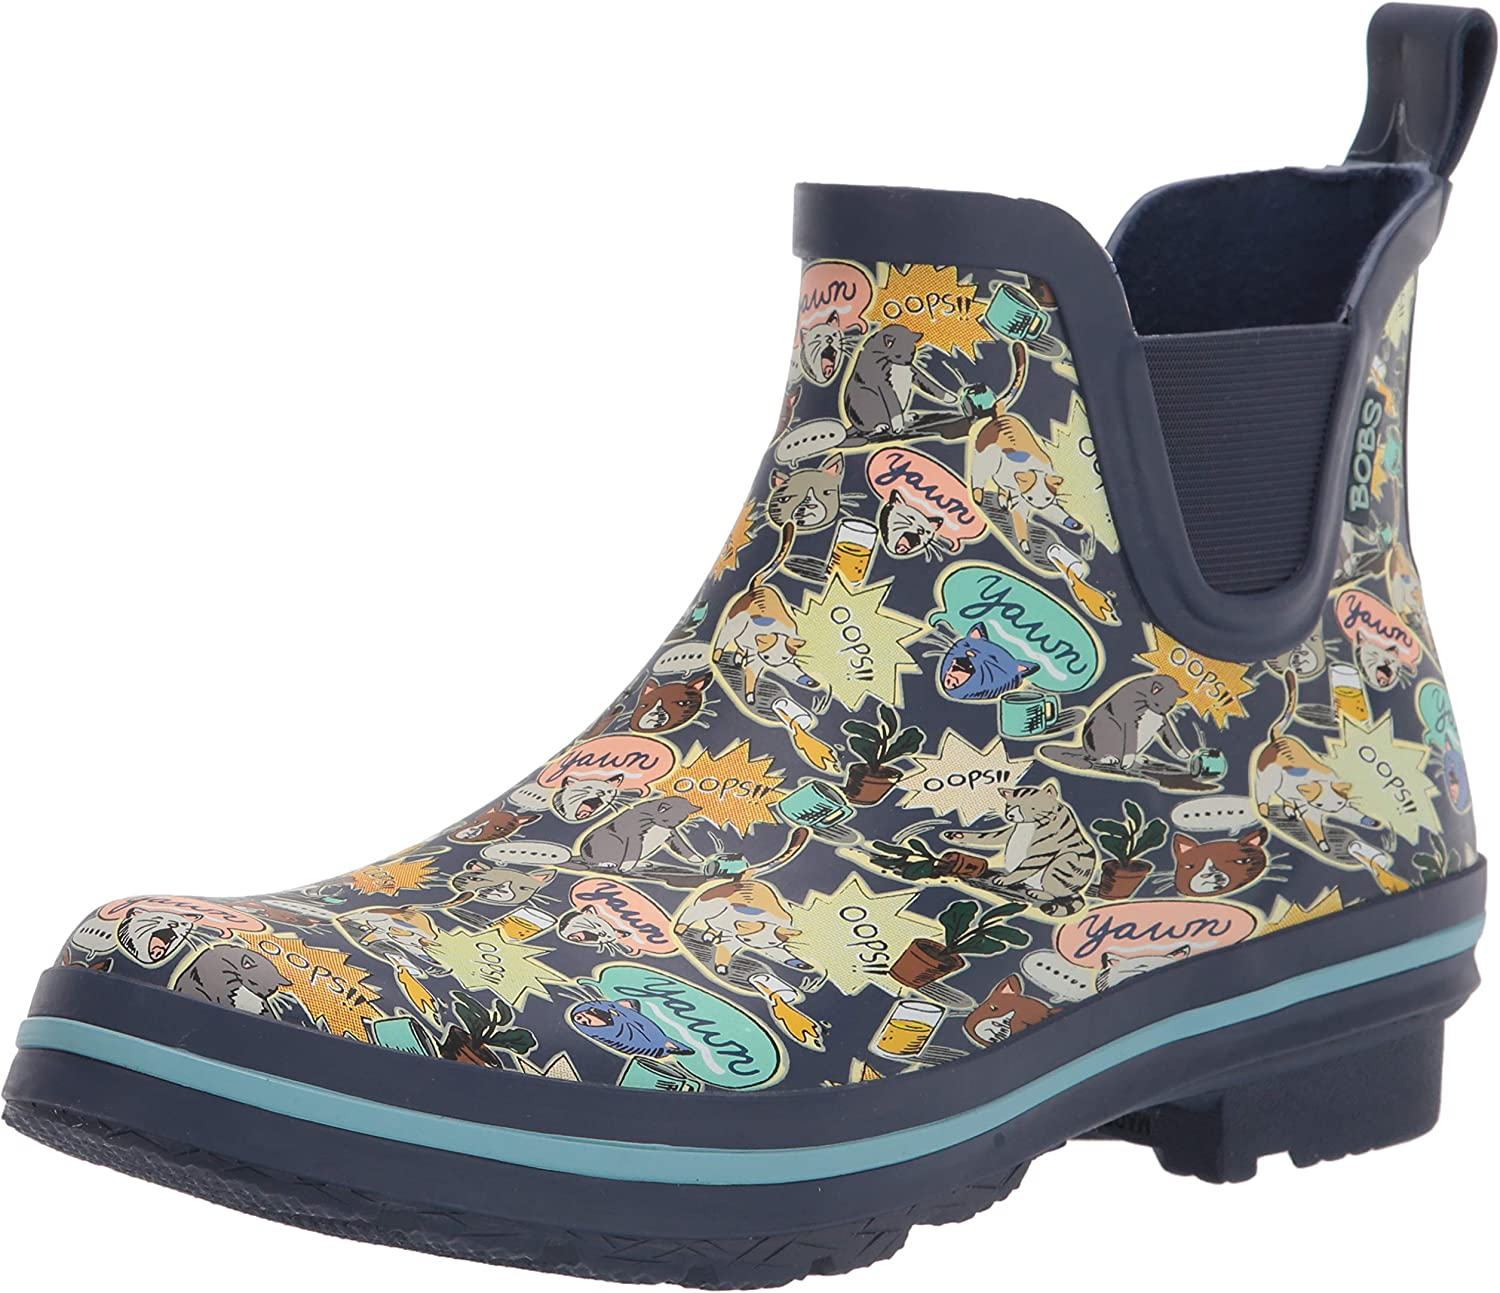 Skechers Women's Rain Check Max 60% OFF Factory outlet Boot Power Shower